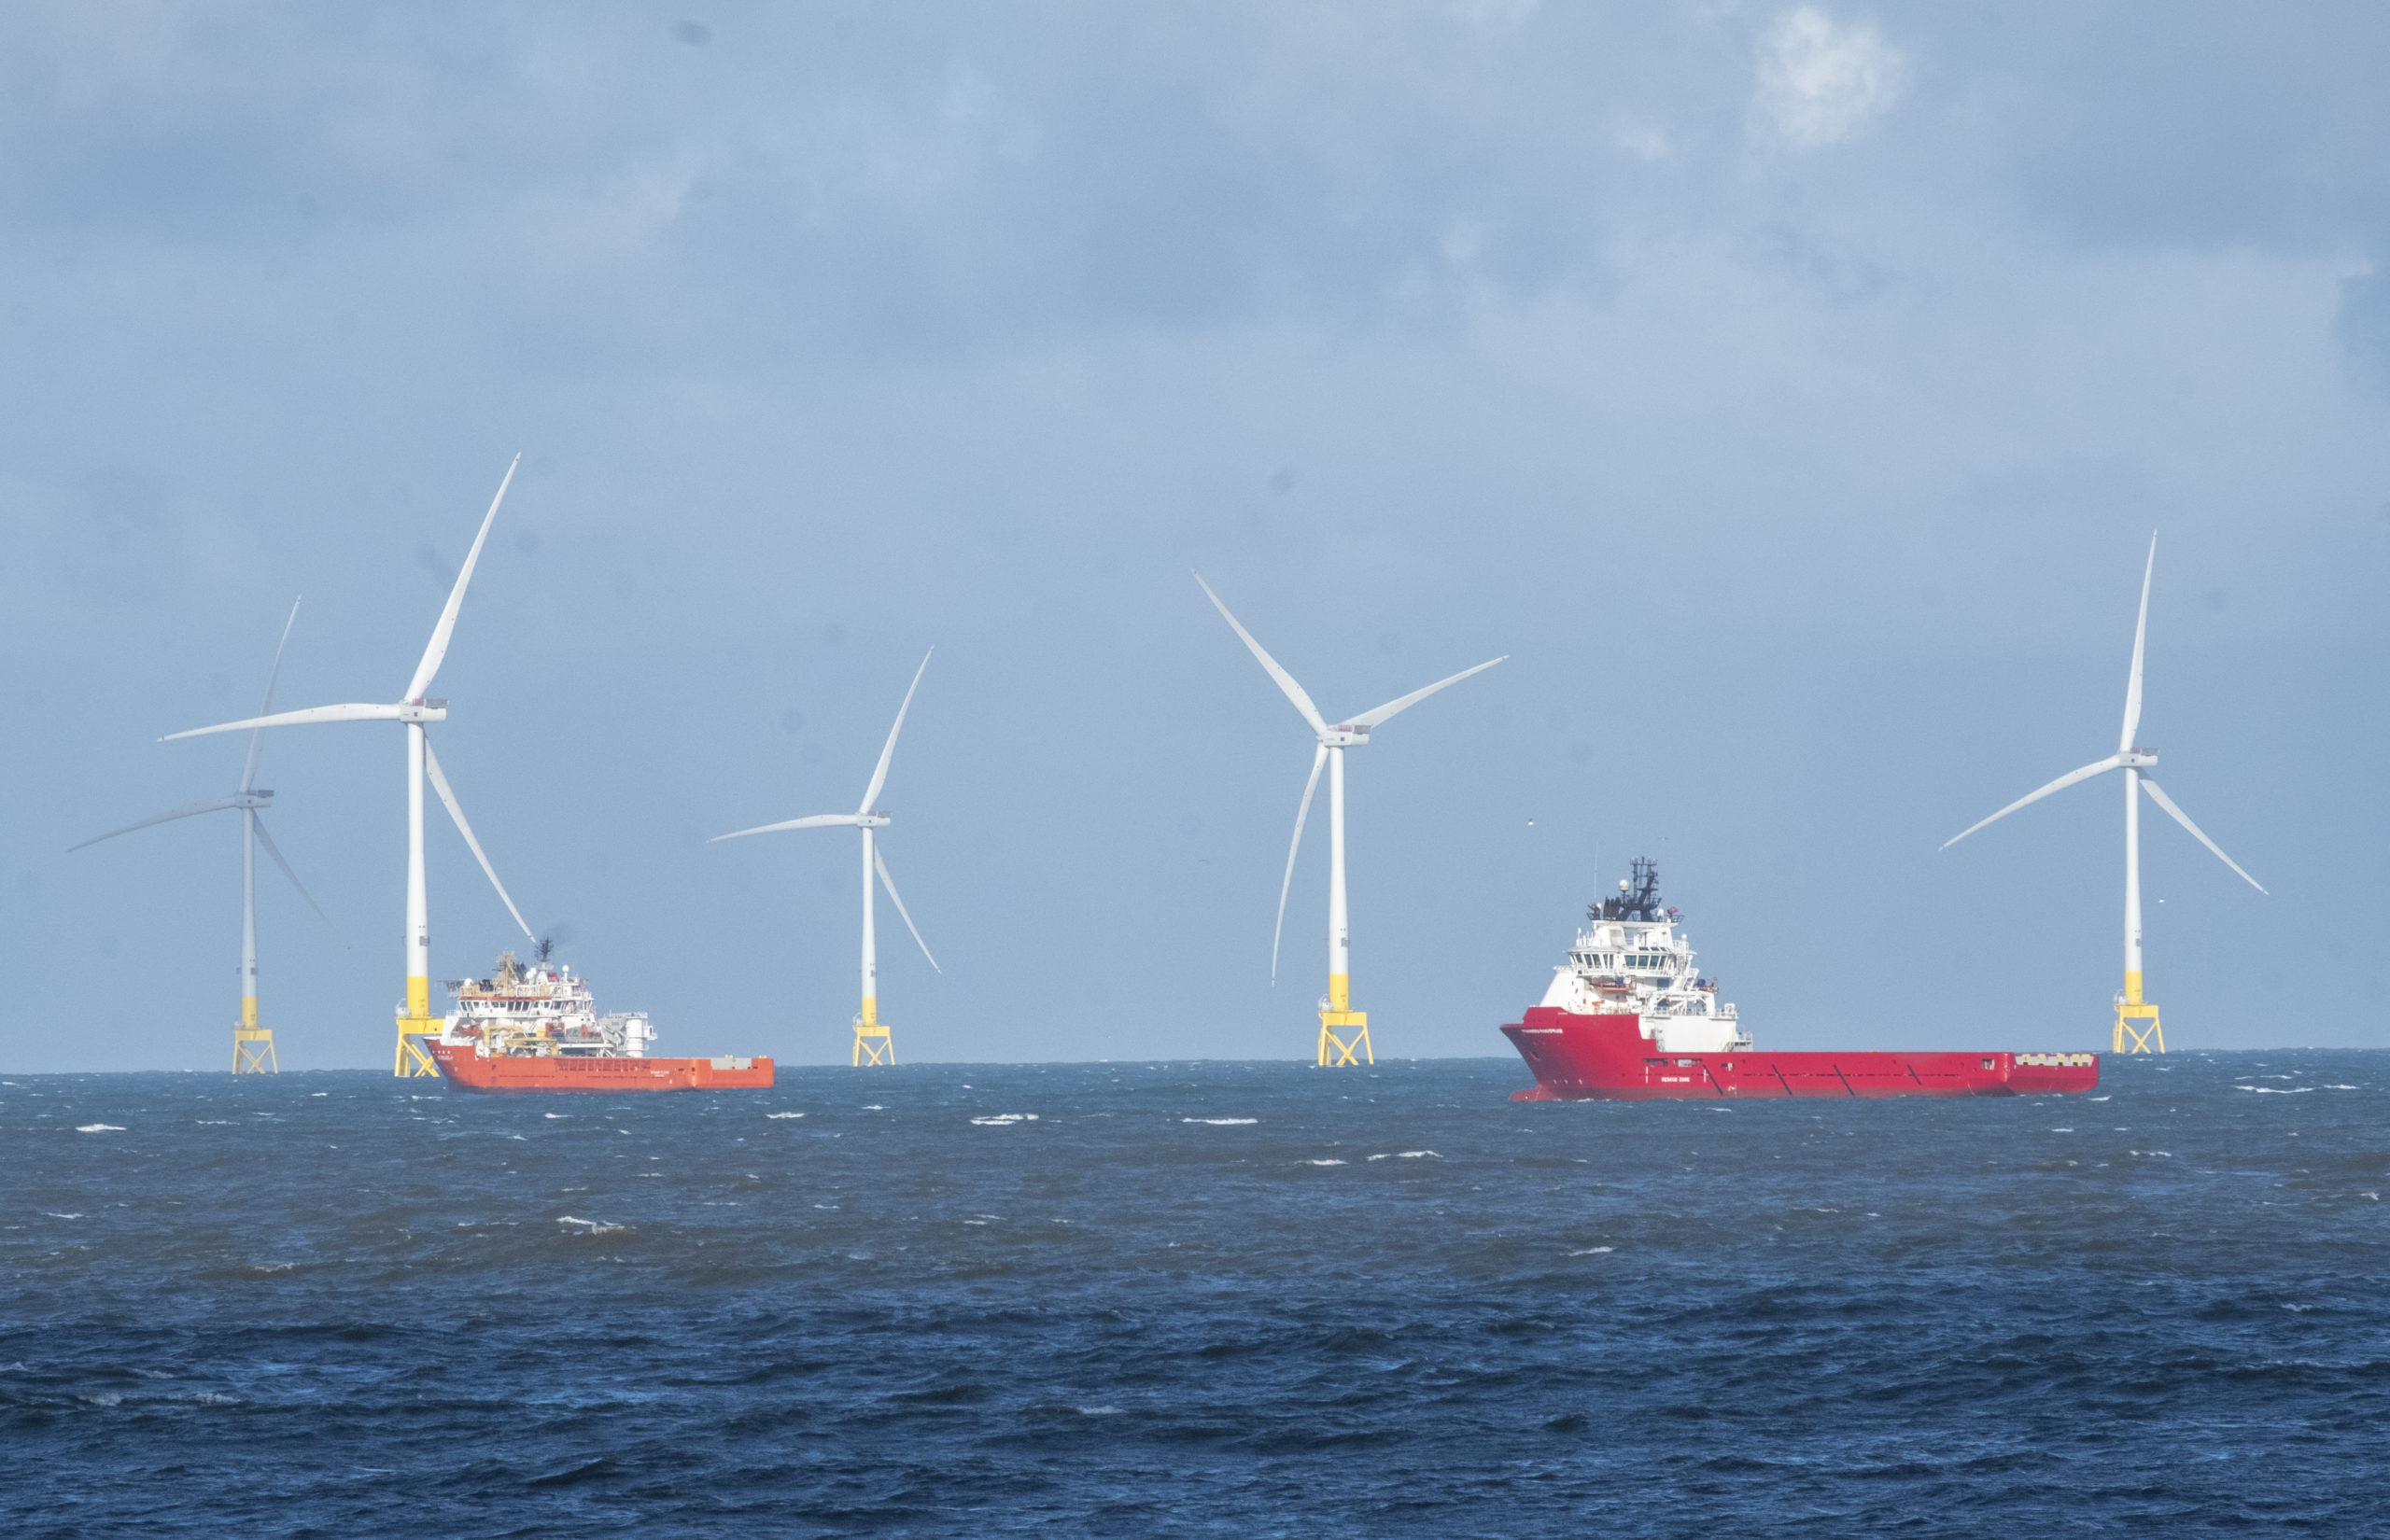 A group of tall offshore wind turbines in the North Sea, with cargo ships alongside them. These energy producing turbines are located off coastline of Aberdeen, on the east coast of Scotland. The renewable energy producers are an alternative to fossil fuel production, in an attempt to reduce the long term impact on our environment. They show a changing seascape along certain areas of the UK coastline, with shipping having to navigate around the manmade structures.